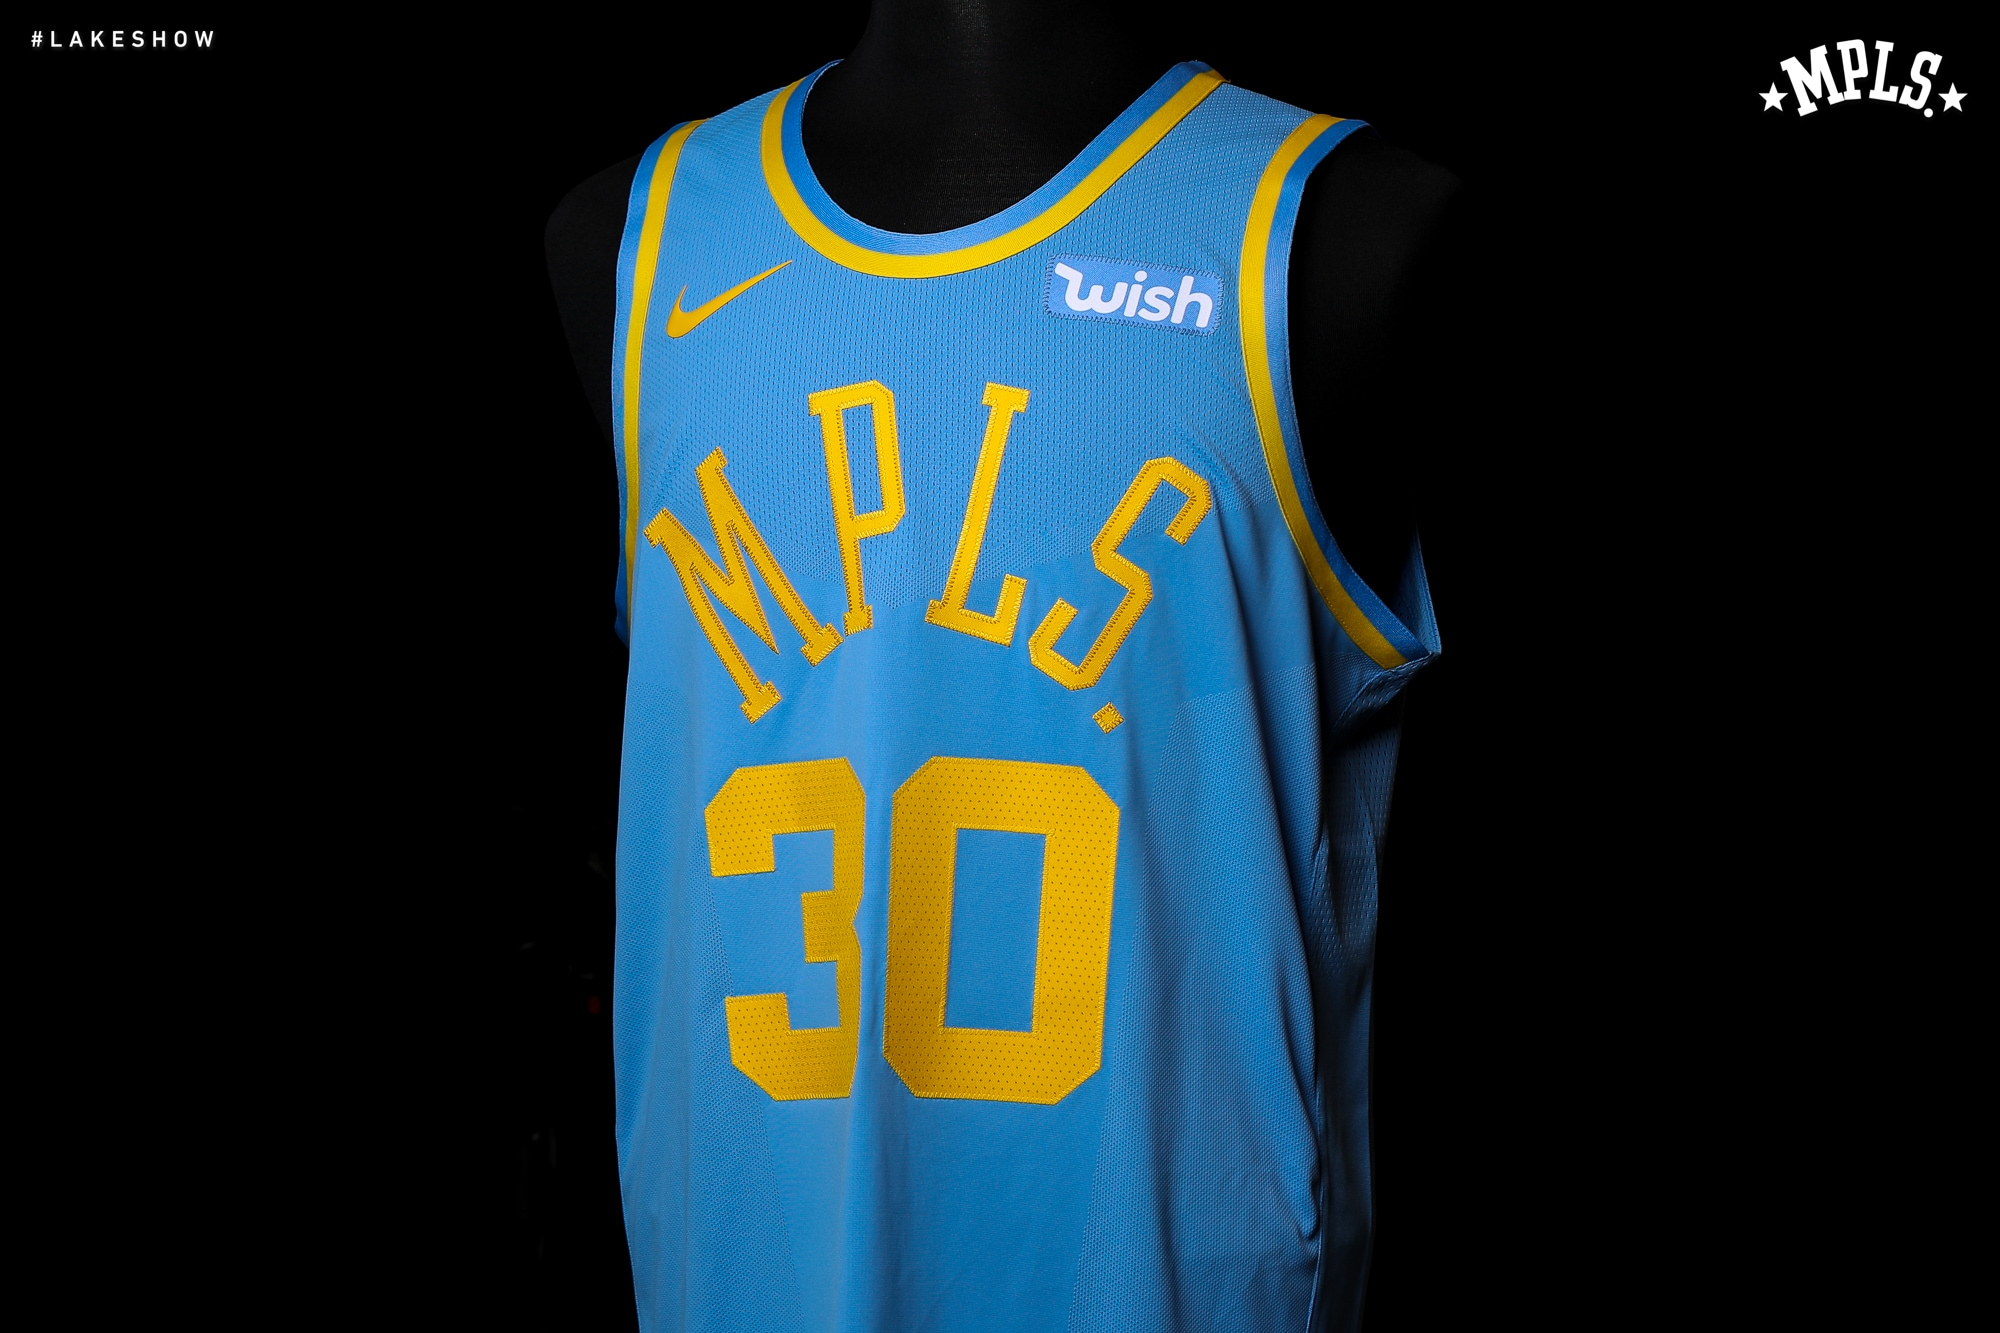 00c1f16c4e7c The Lakers will wear their classic MPLS uniforms five times throughout the  2017-18 season